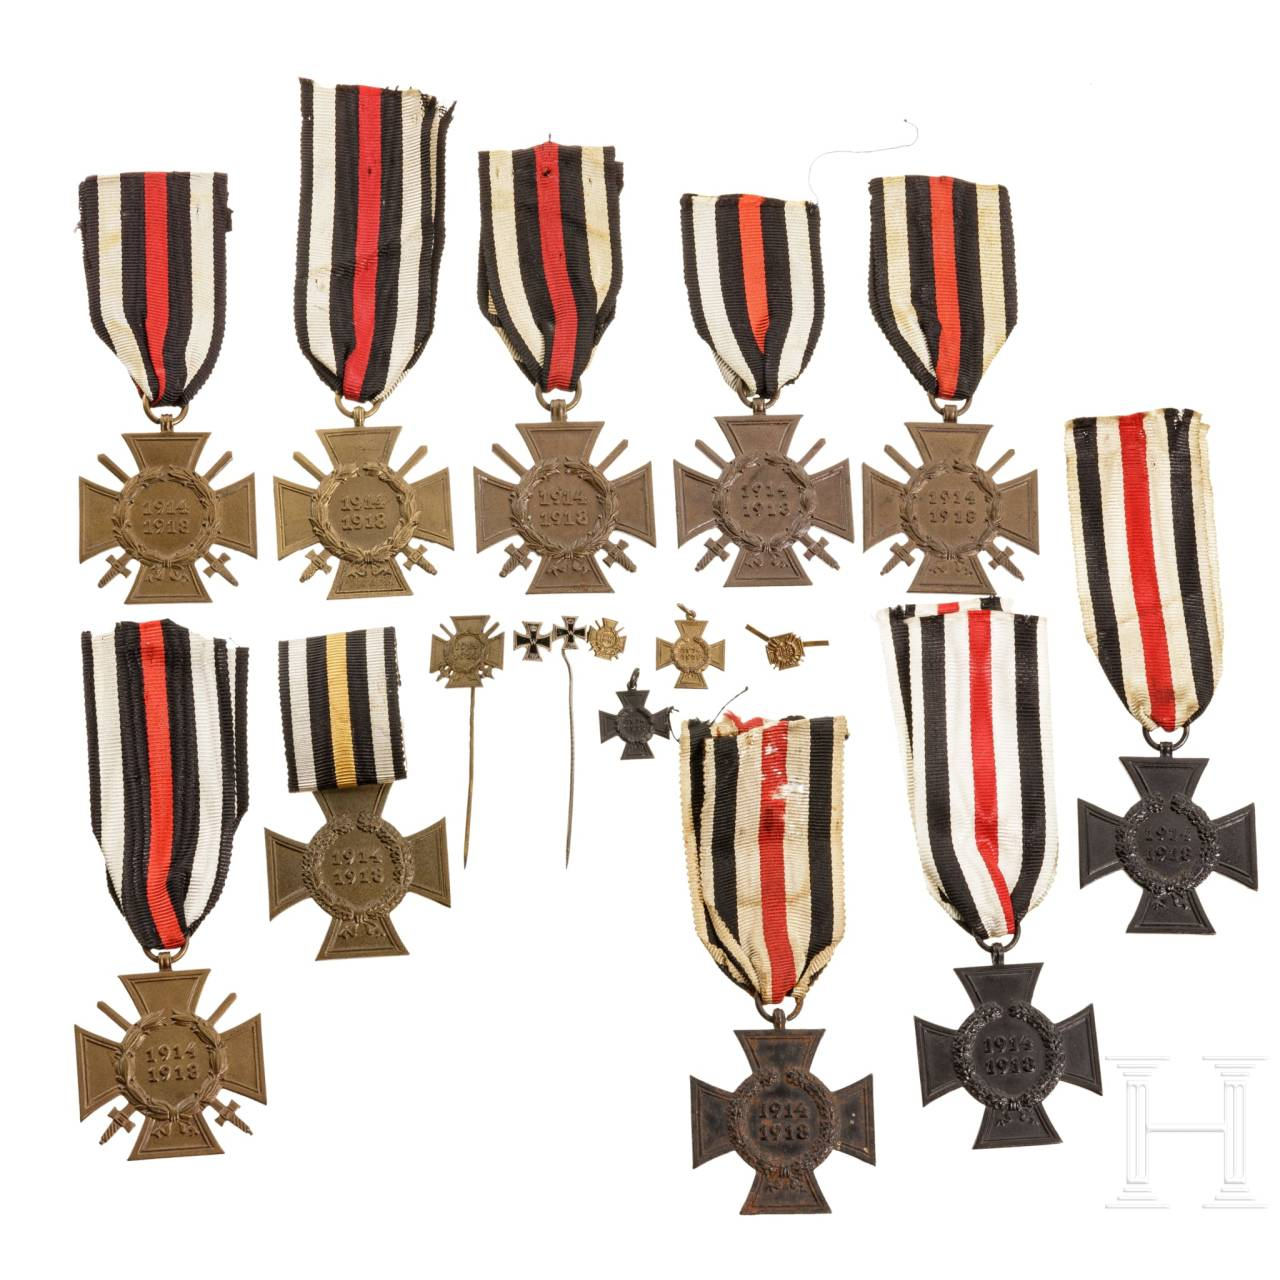 Ten Prussian honour crosses for front fighters, 1914 - 1918